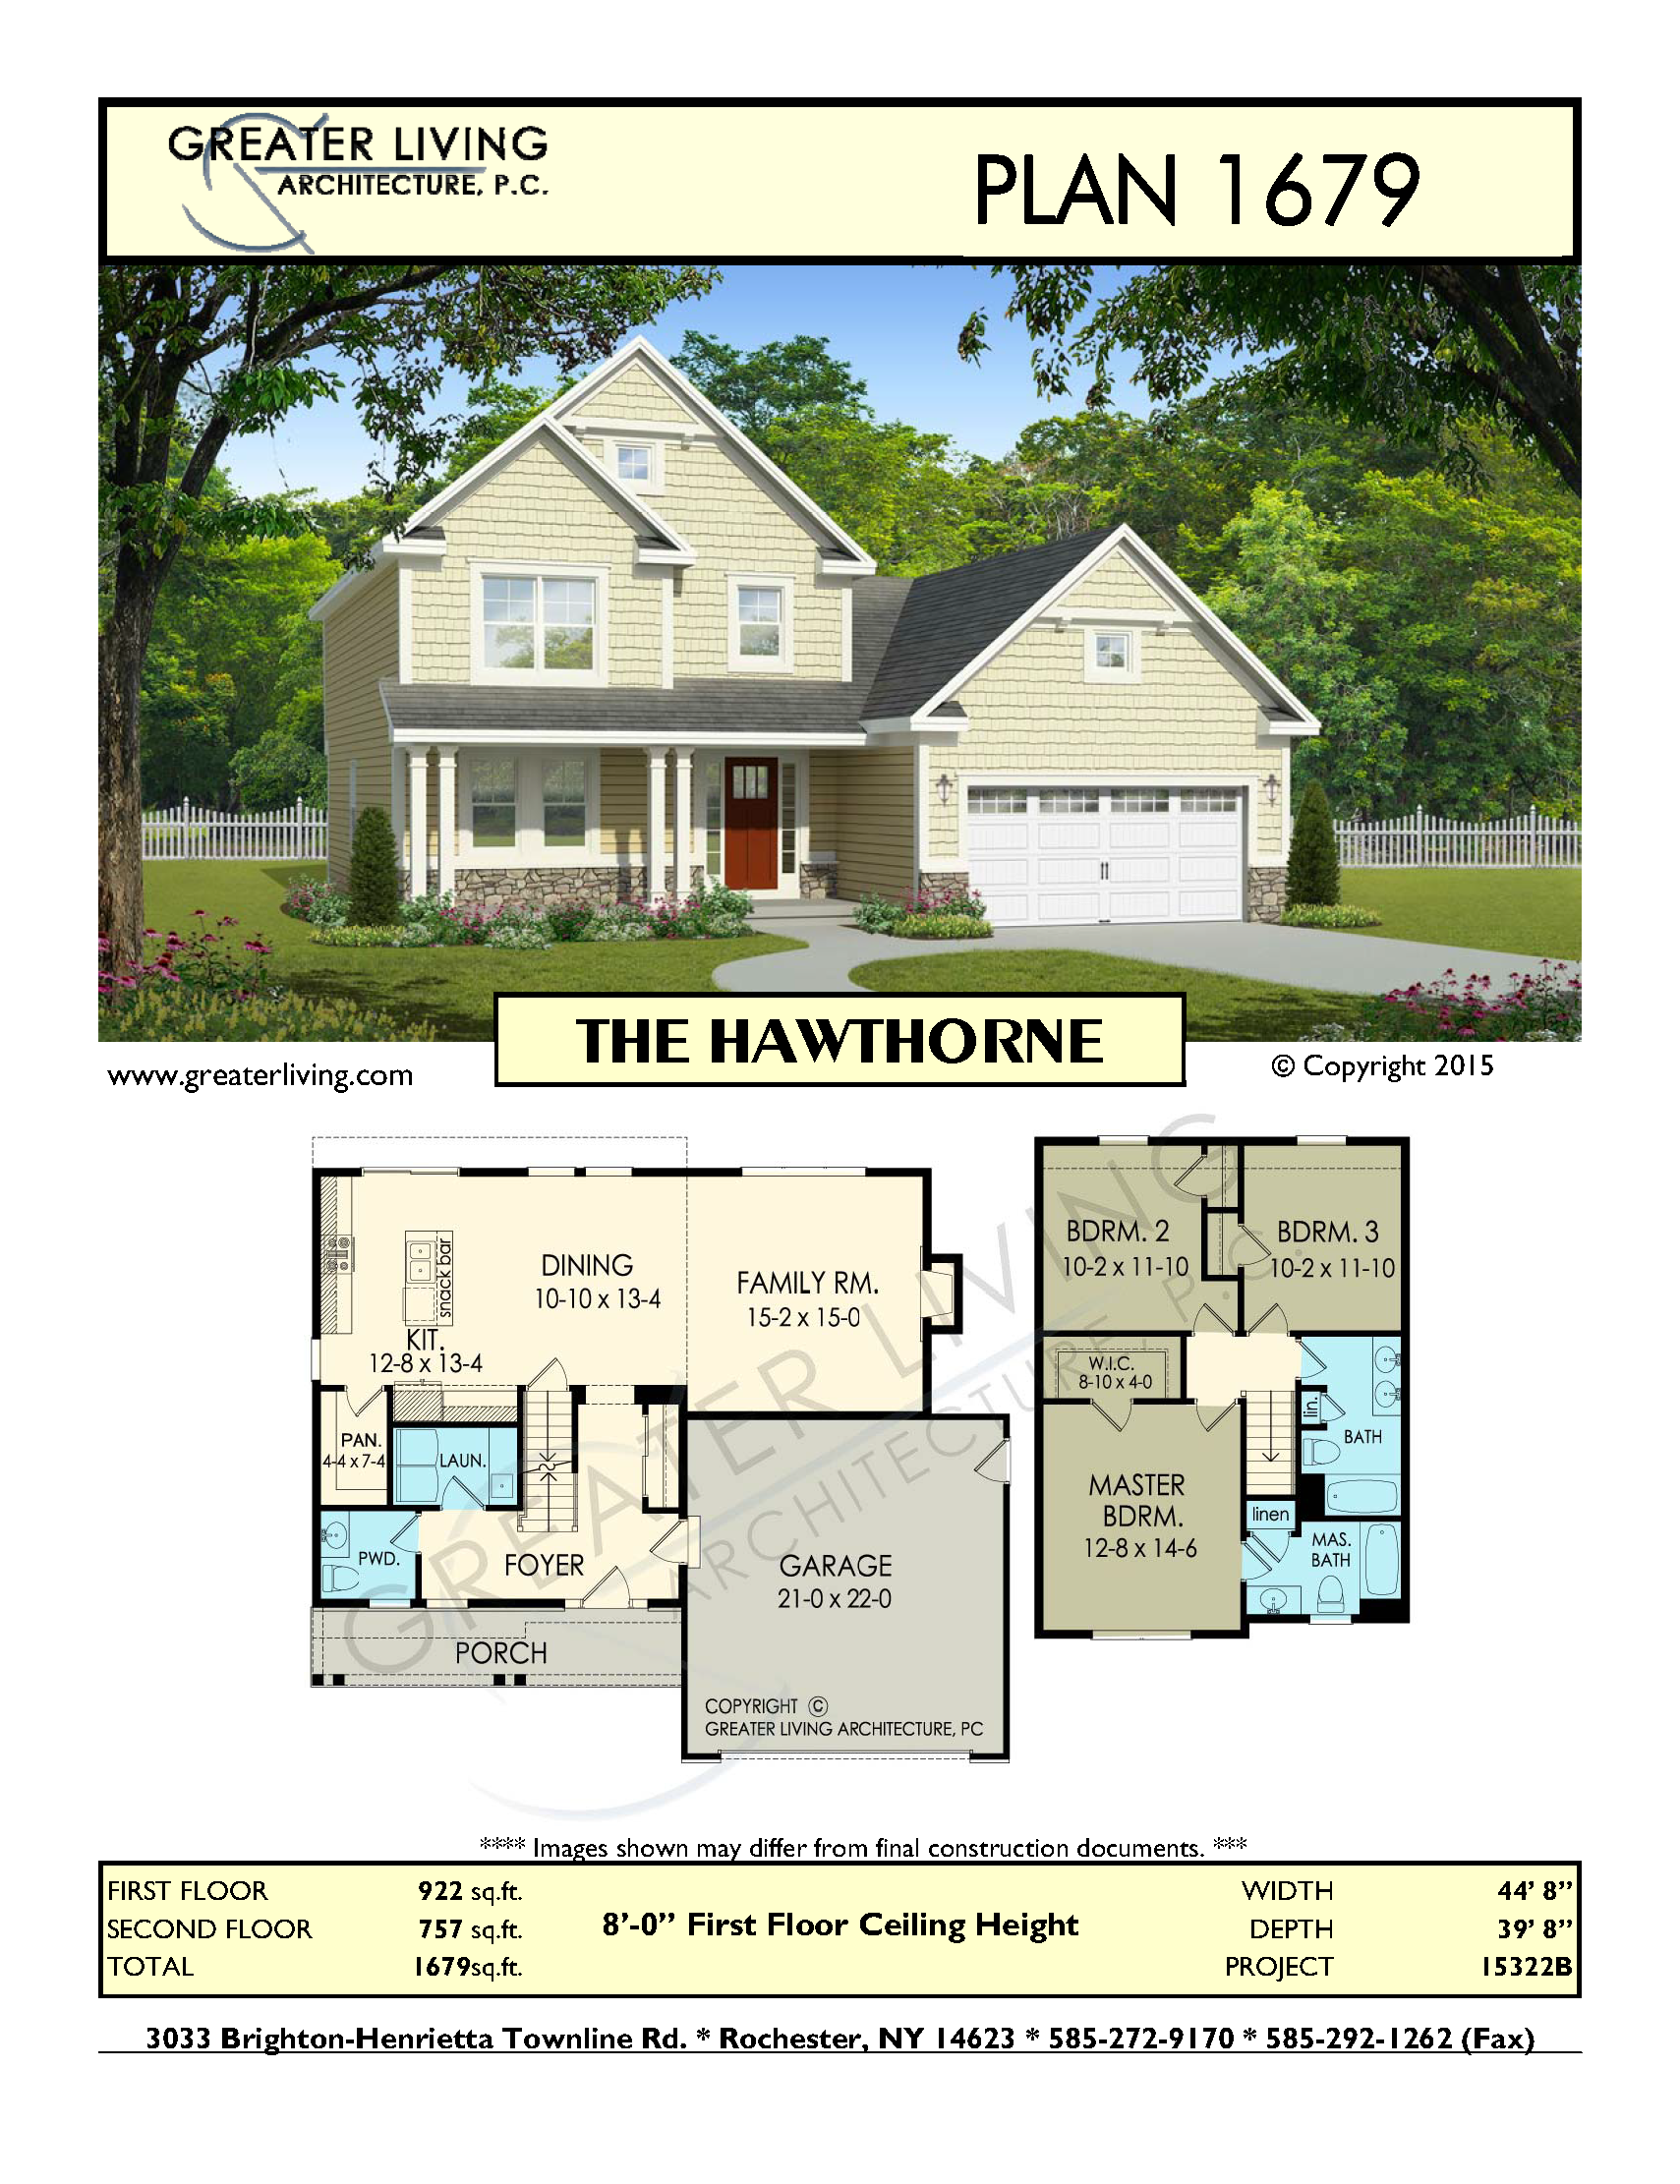 Plan 1679 the hawthorne house plans 2 story house plan greater living